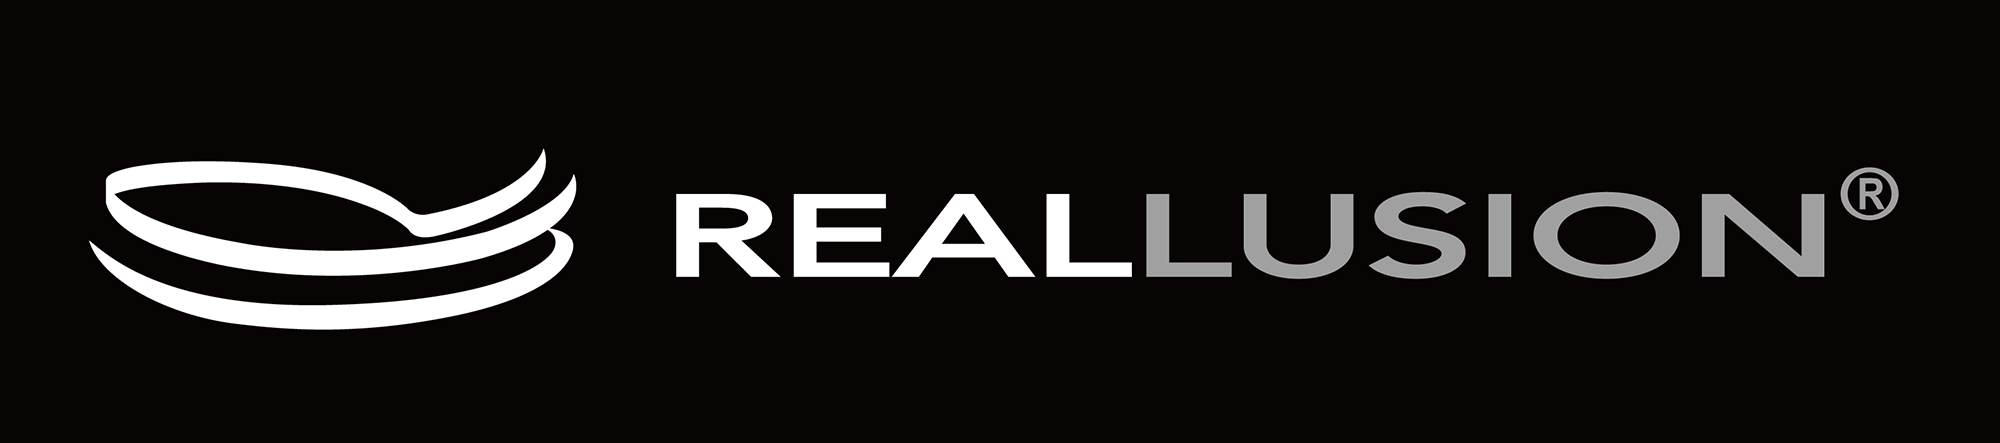 reallusion logo–black vertical grayscale